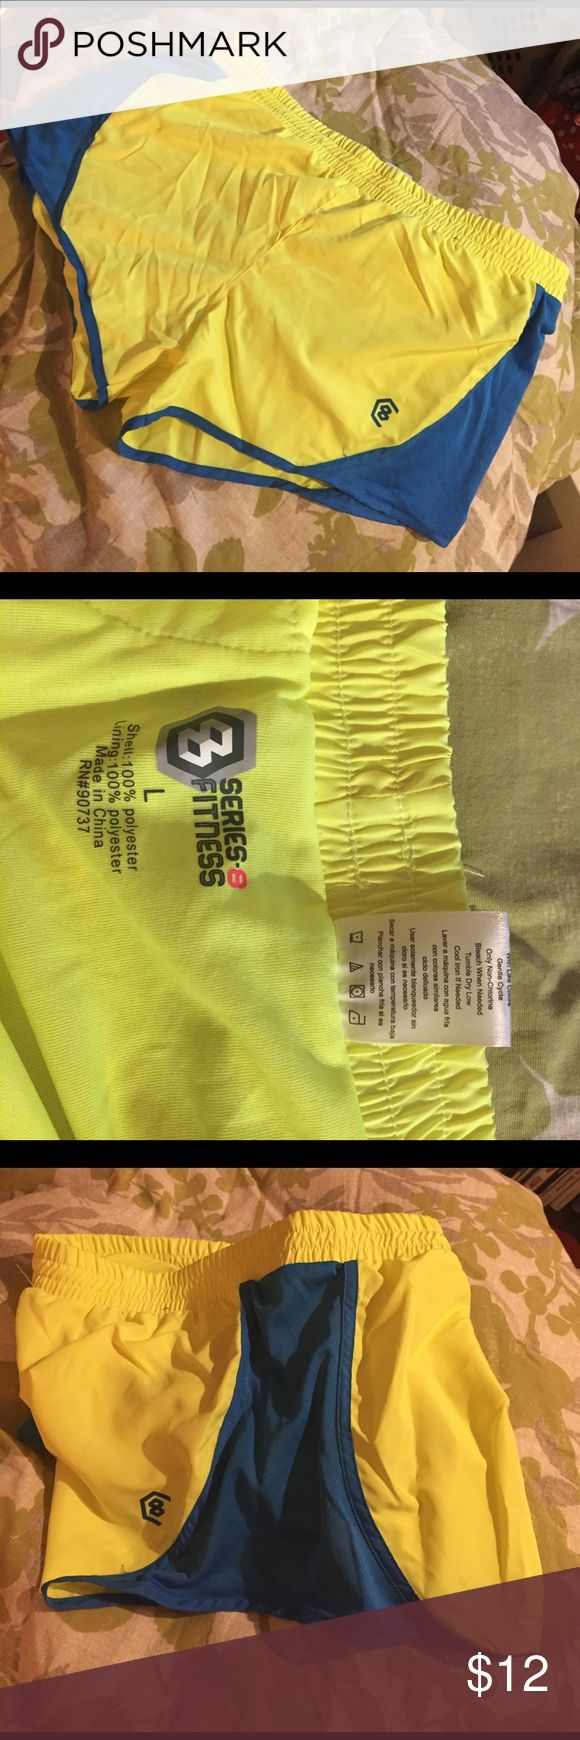 Yellow and blue workout shorts Neon yellow and blue work out shorts, never worn! Look like new series fitness Shorts